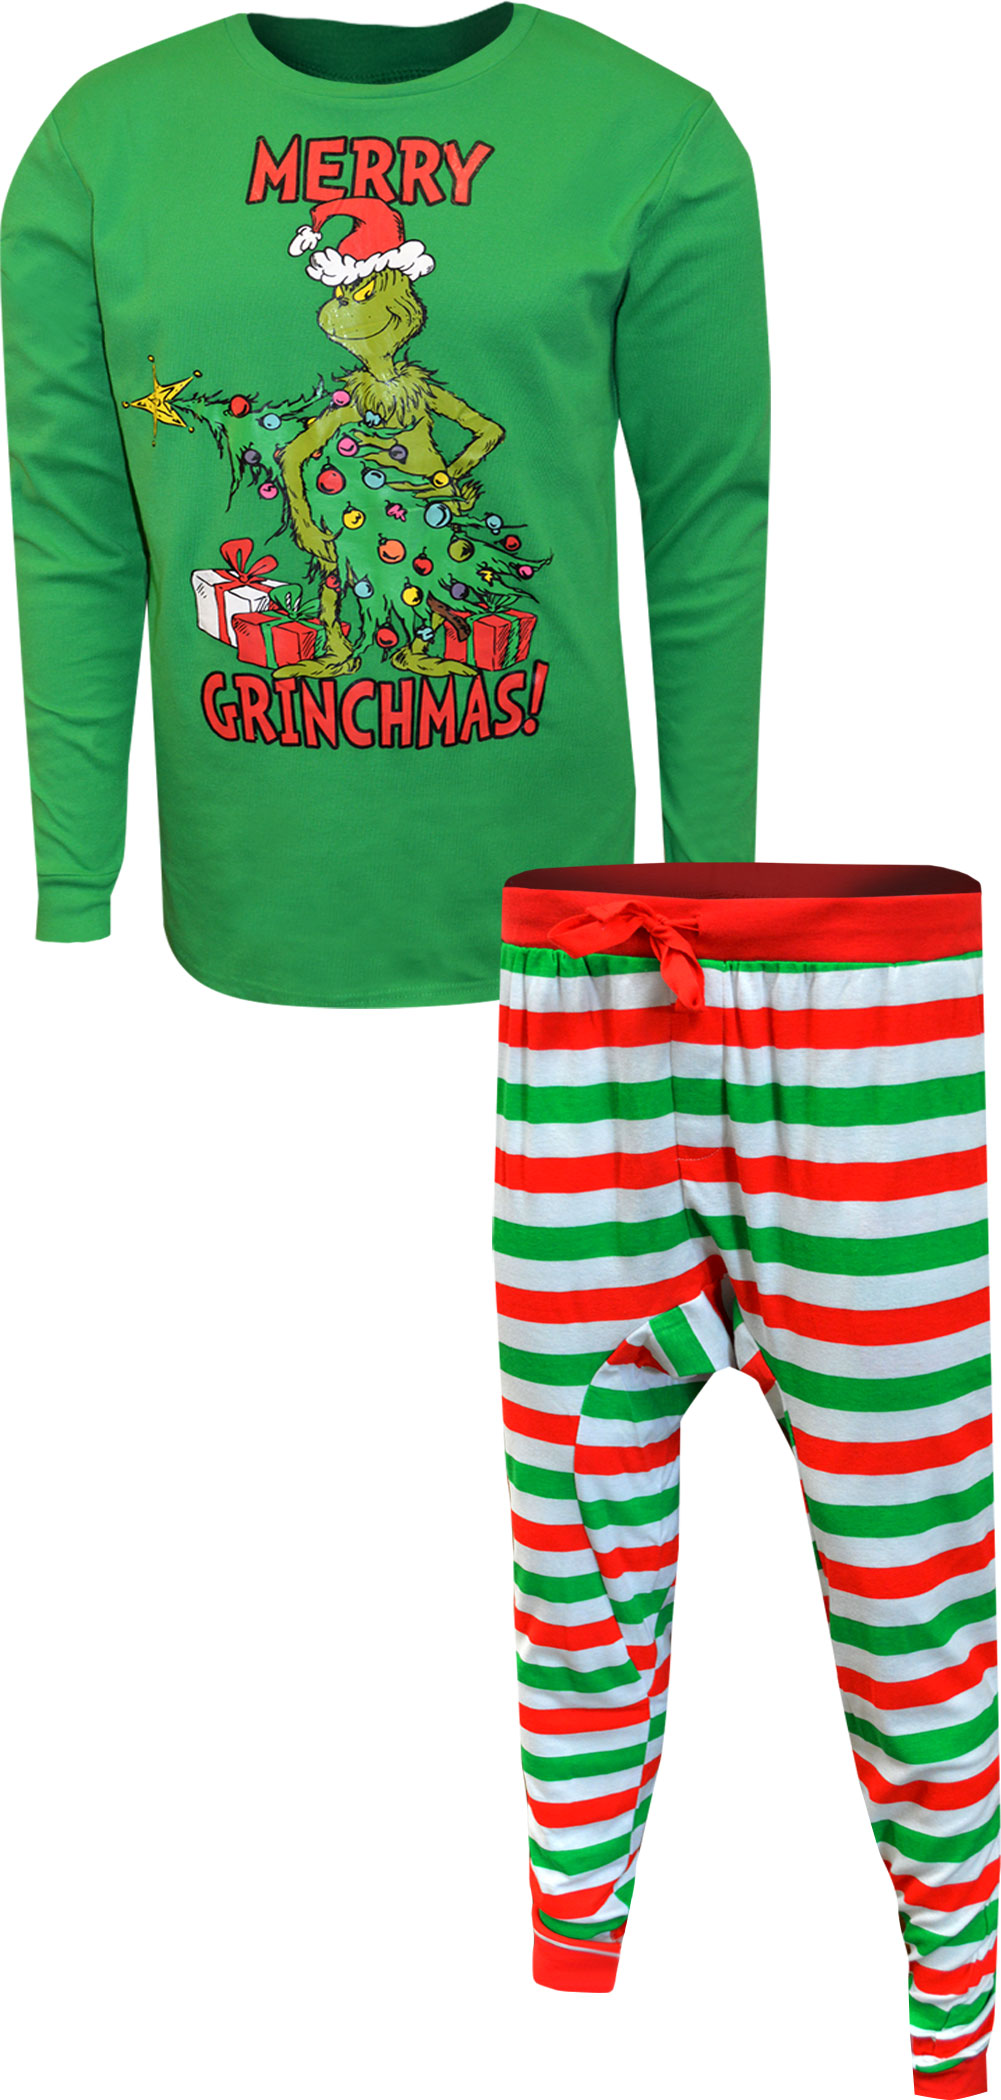 Image of Dr. Seuss Grinch Merry Grinchmas Tall Guys Pajamas for men